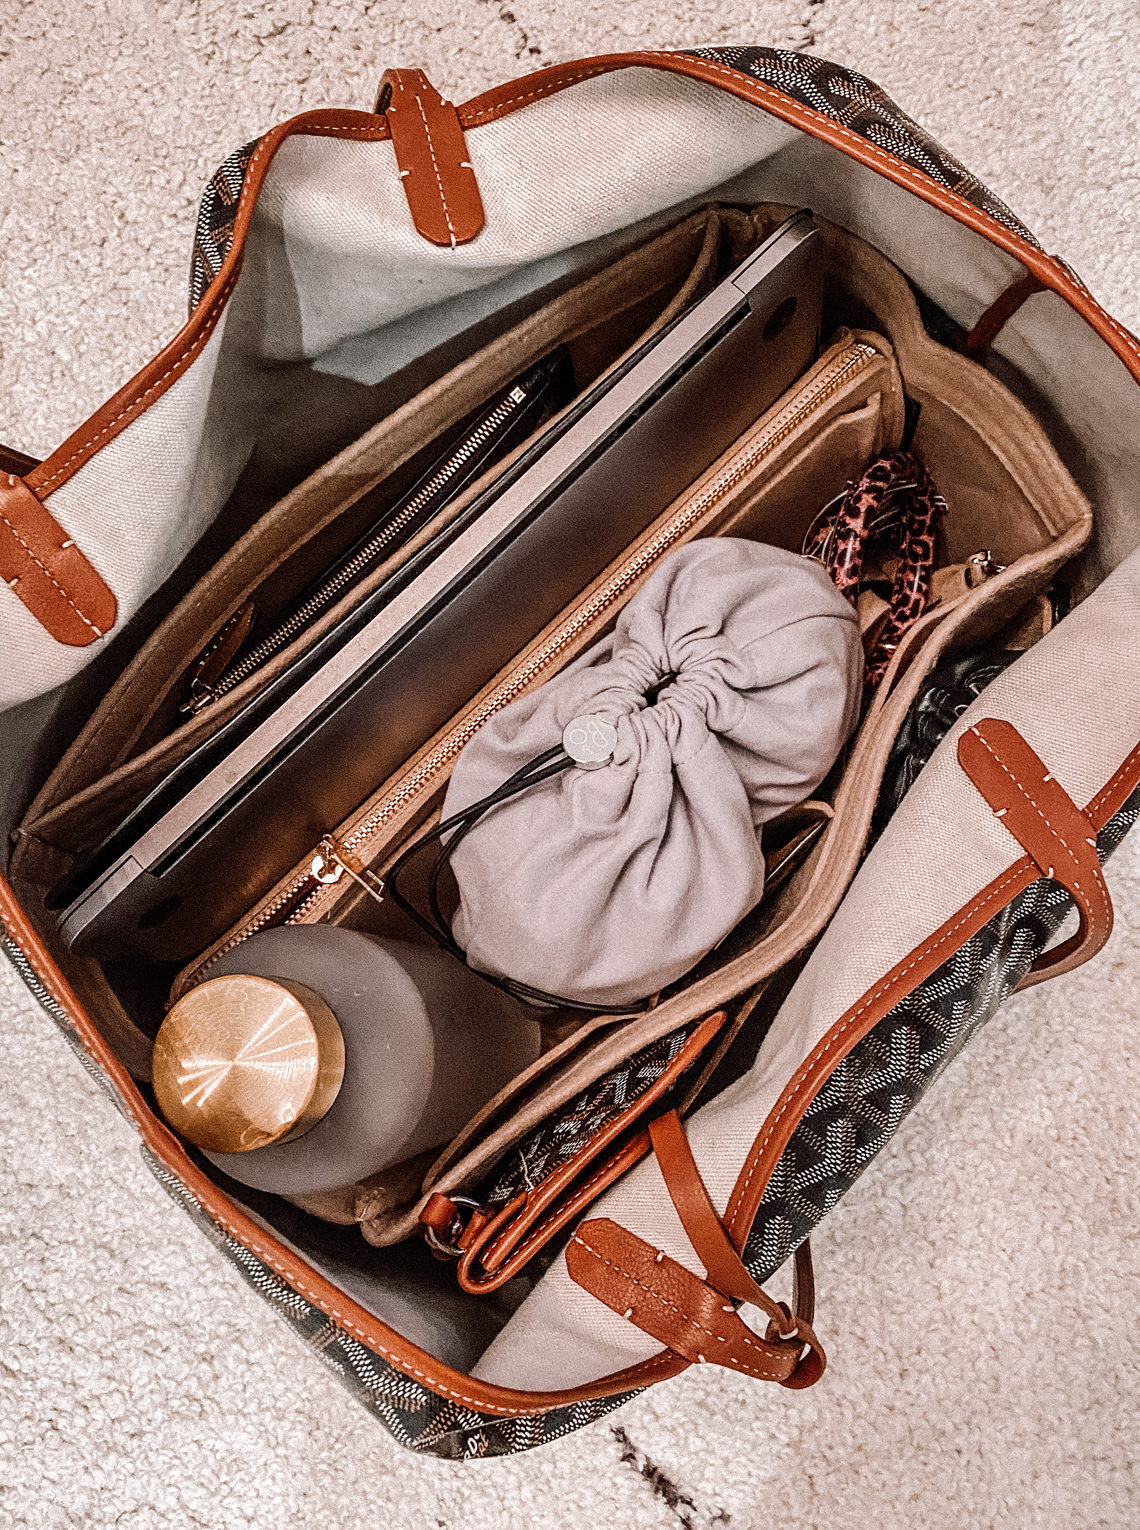 Fashion Jackson Amazon Felt Tote Organizer Insert